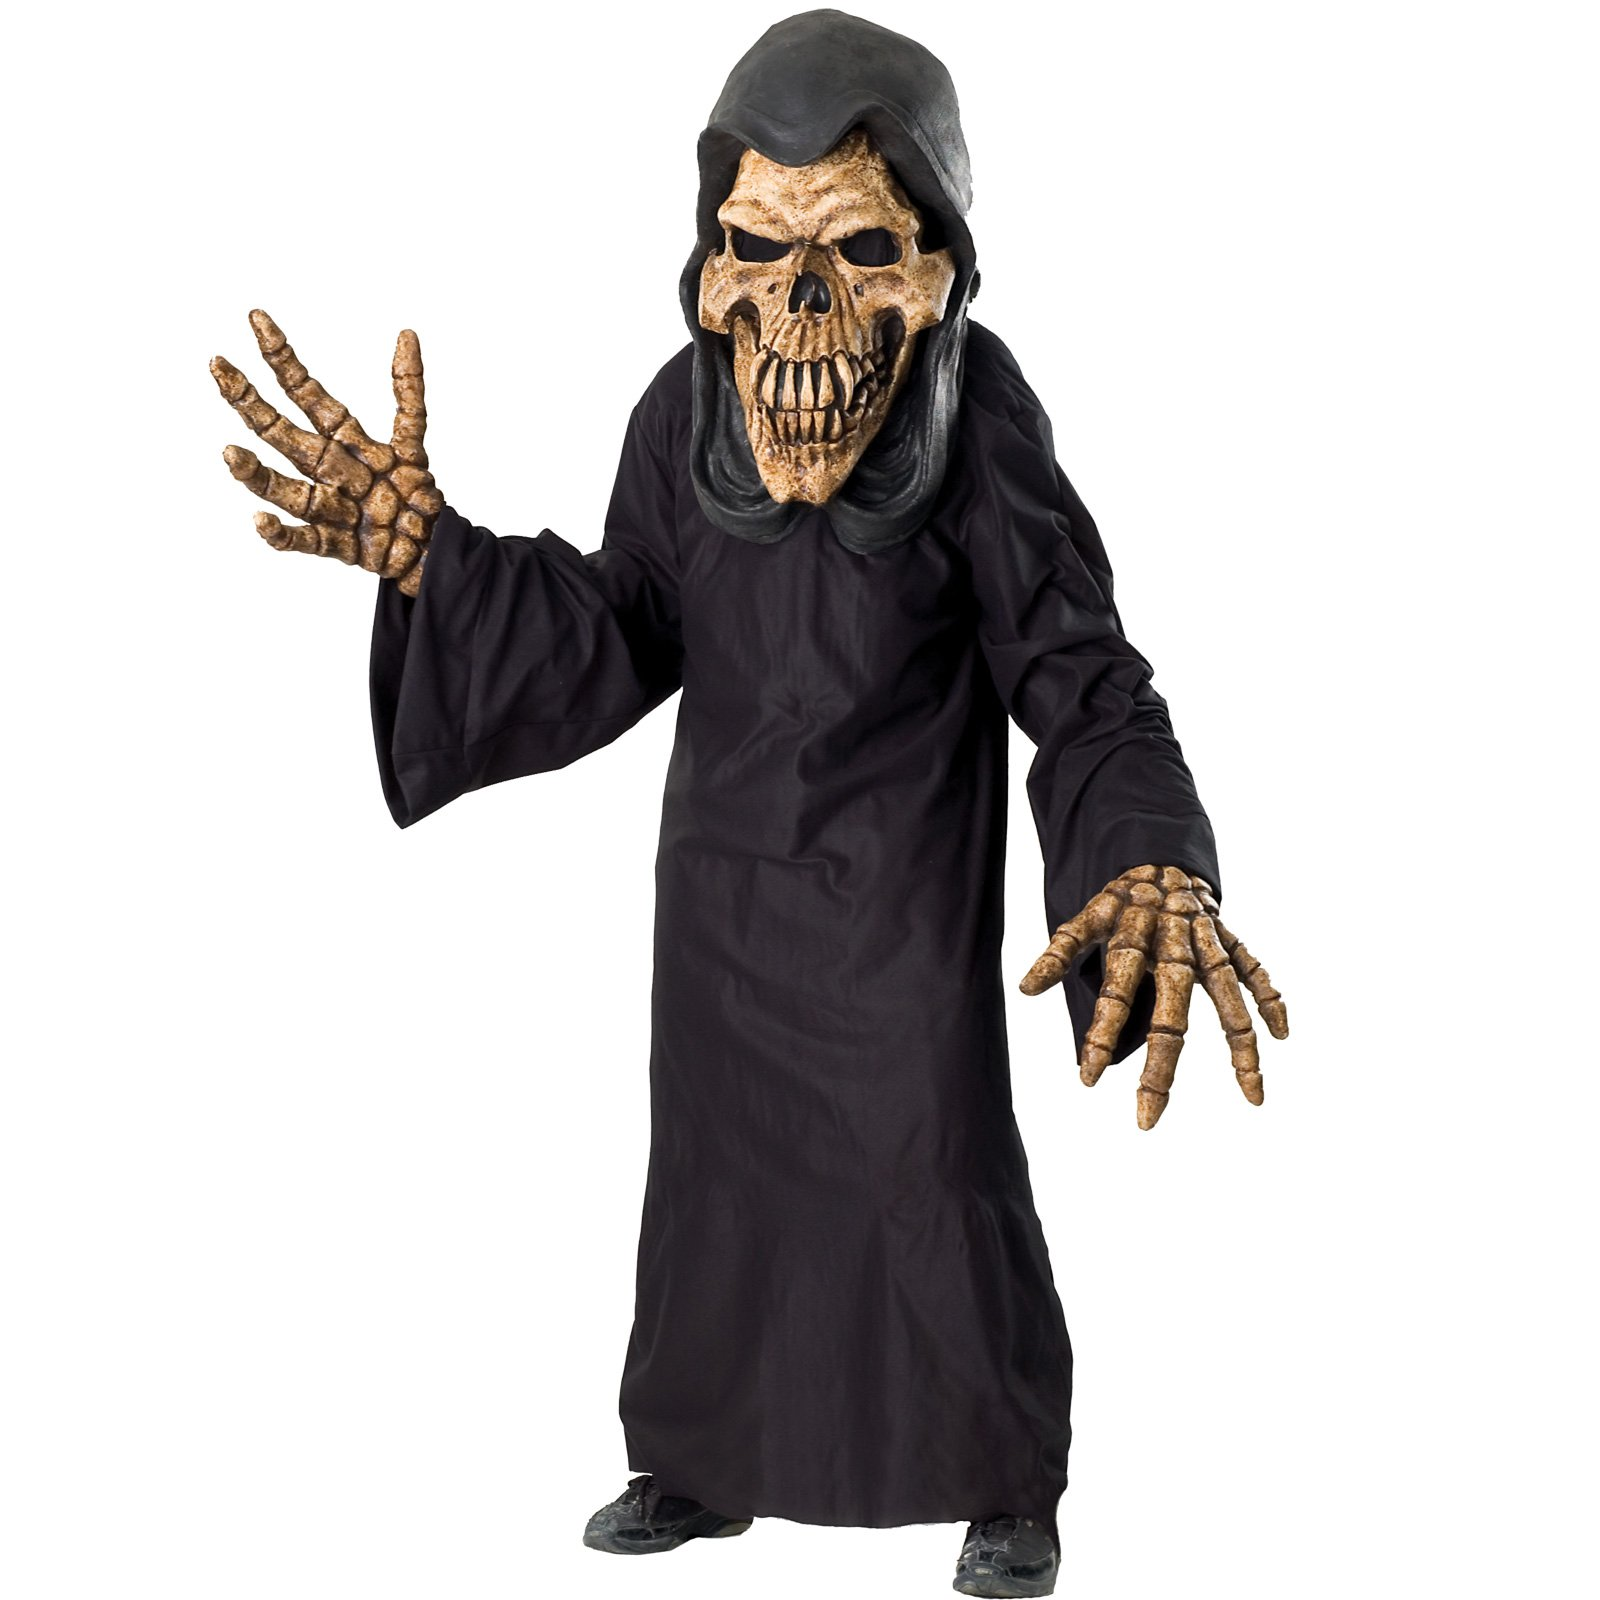 Grim Reaper Creature Reacher Adult Costume